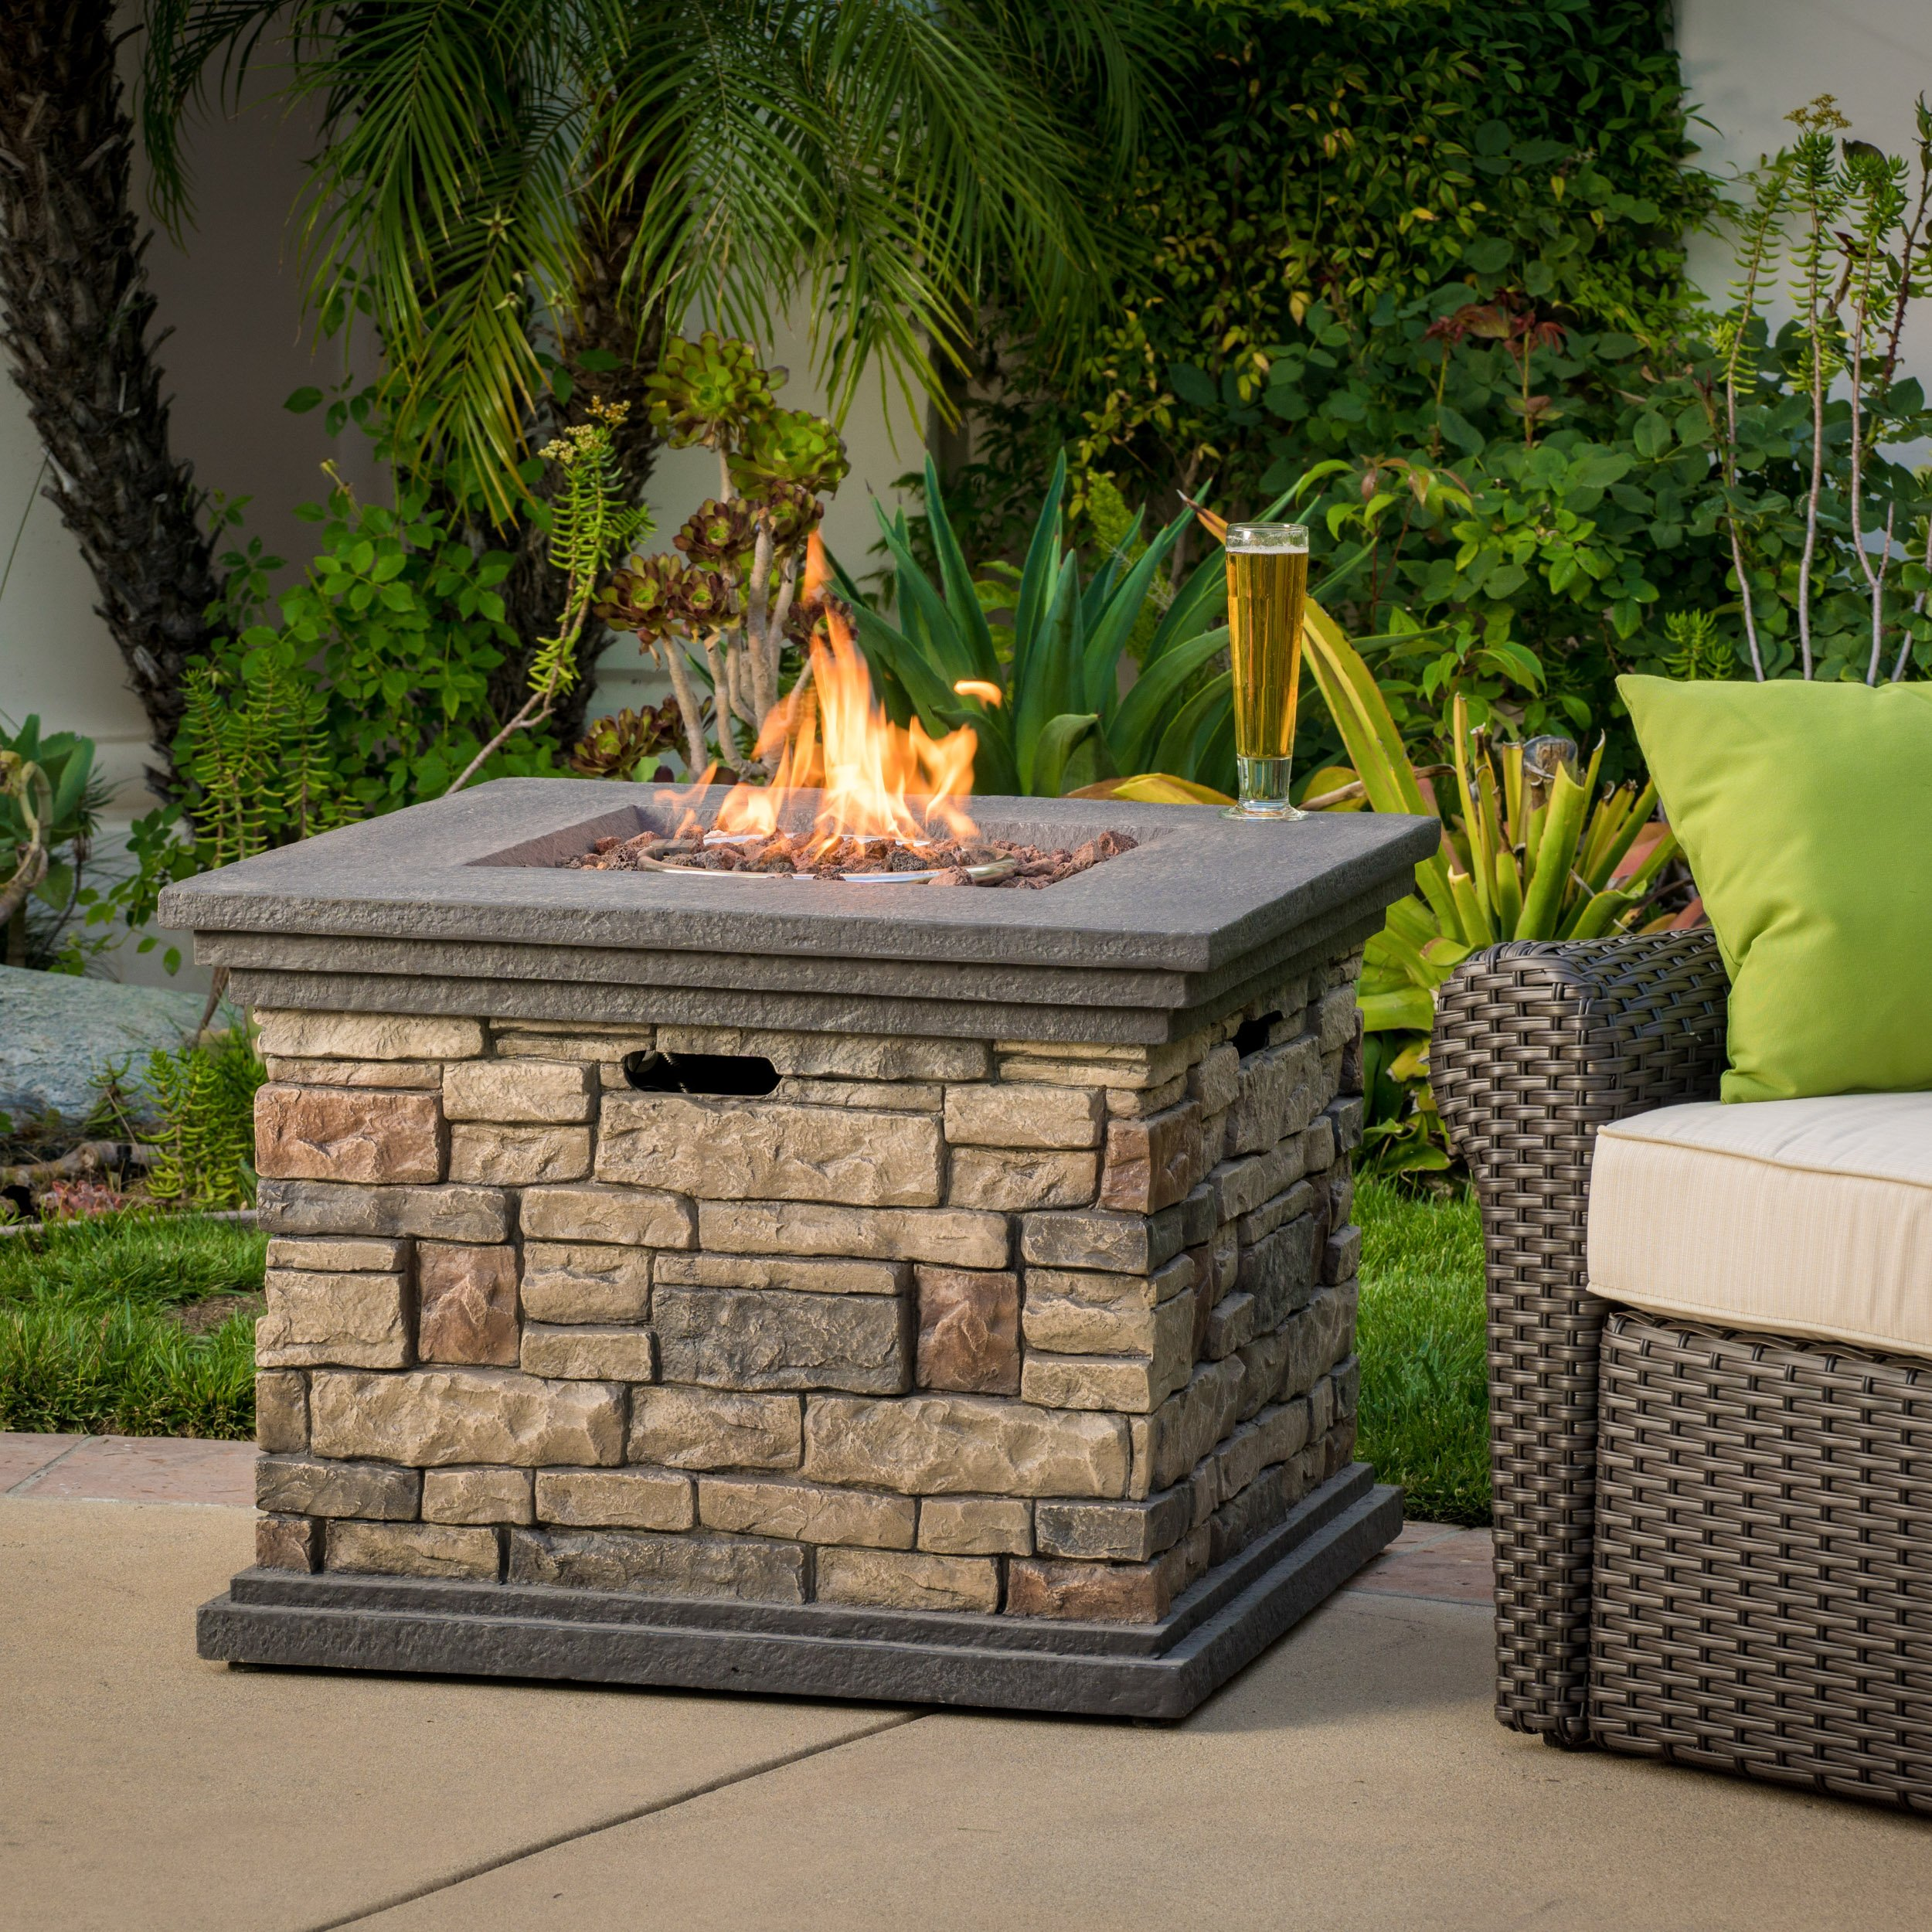 Great Deal Furniture Crawford   Outdoor Square Propane Fire Pit with Lava Rocks   with Stone Finish